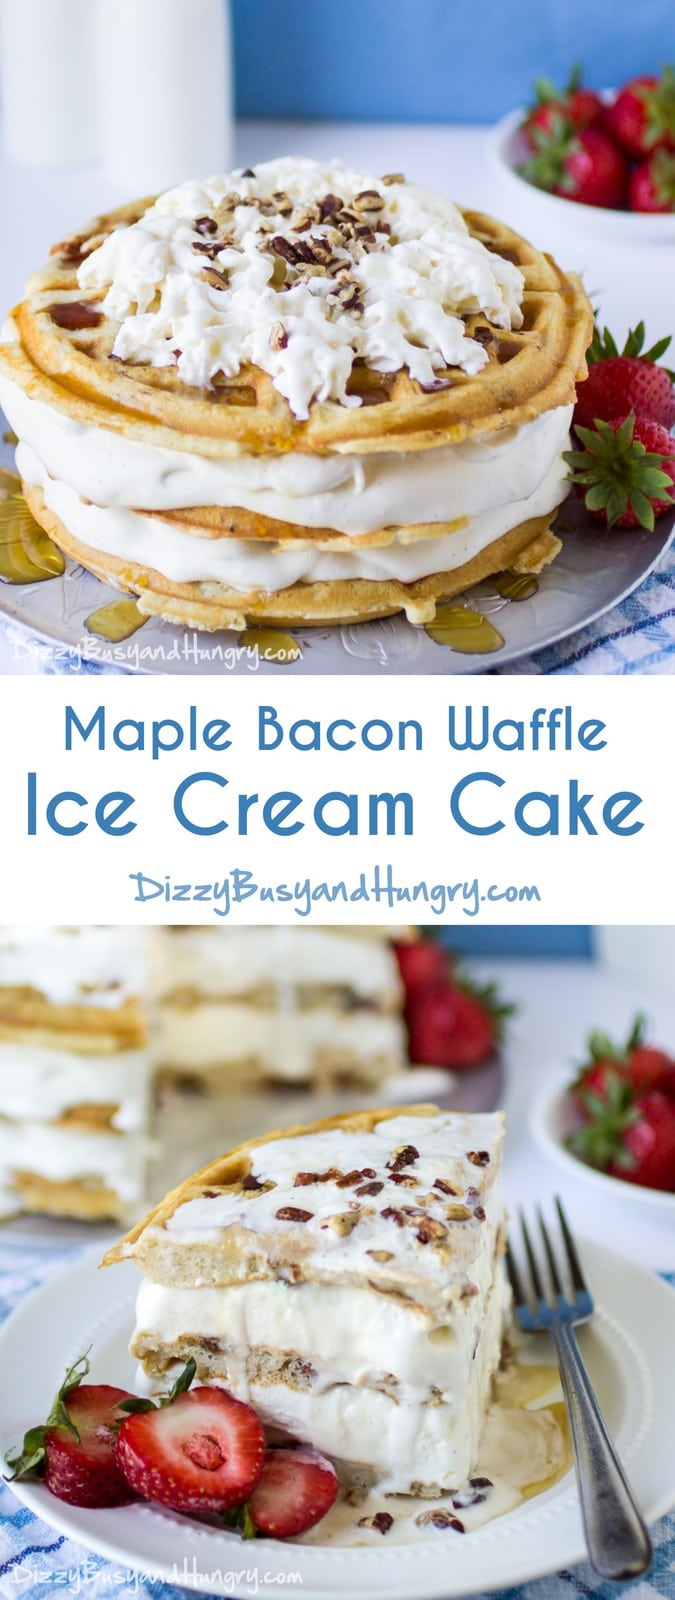 Maple Bacon Waffle Ice Cream Cake #SundaySupper | DizzyBusyandHungry.com - Bacon in ice cream cake? Oh yeah, we went there, and we aren't going back!